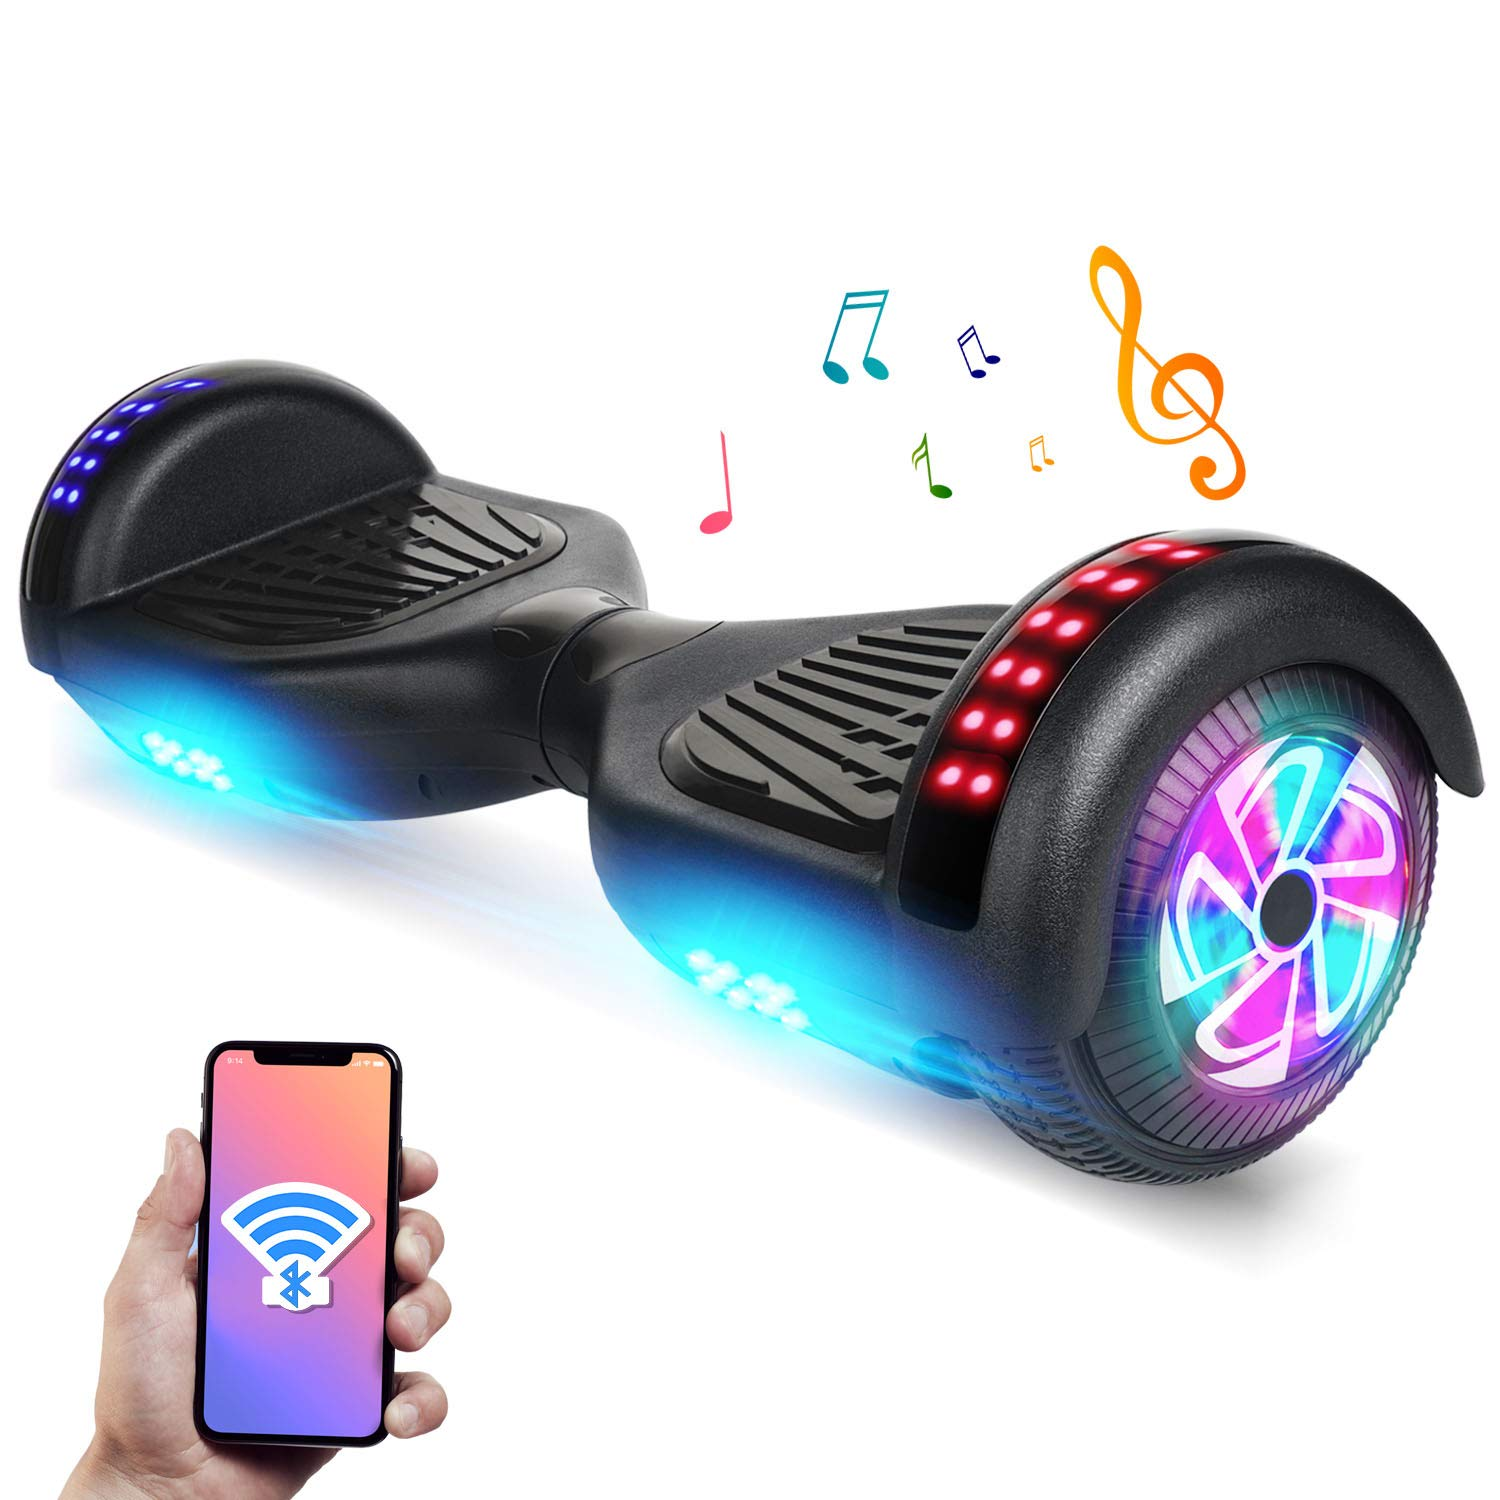 YHR 6.5'' Hoverboard -Self Balancing Scooter 2 Wheel Electric Scooter - UL Certified 2272 Bluetooth W/Speaker, LED Wheels and LED Lights (Black)